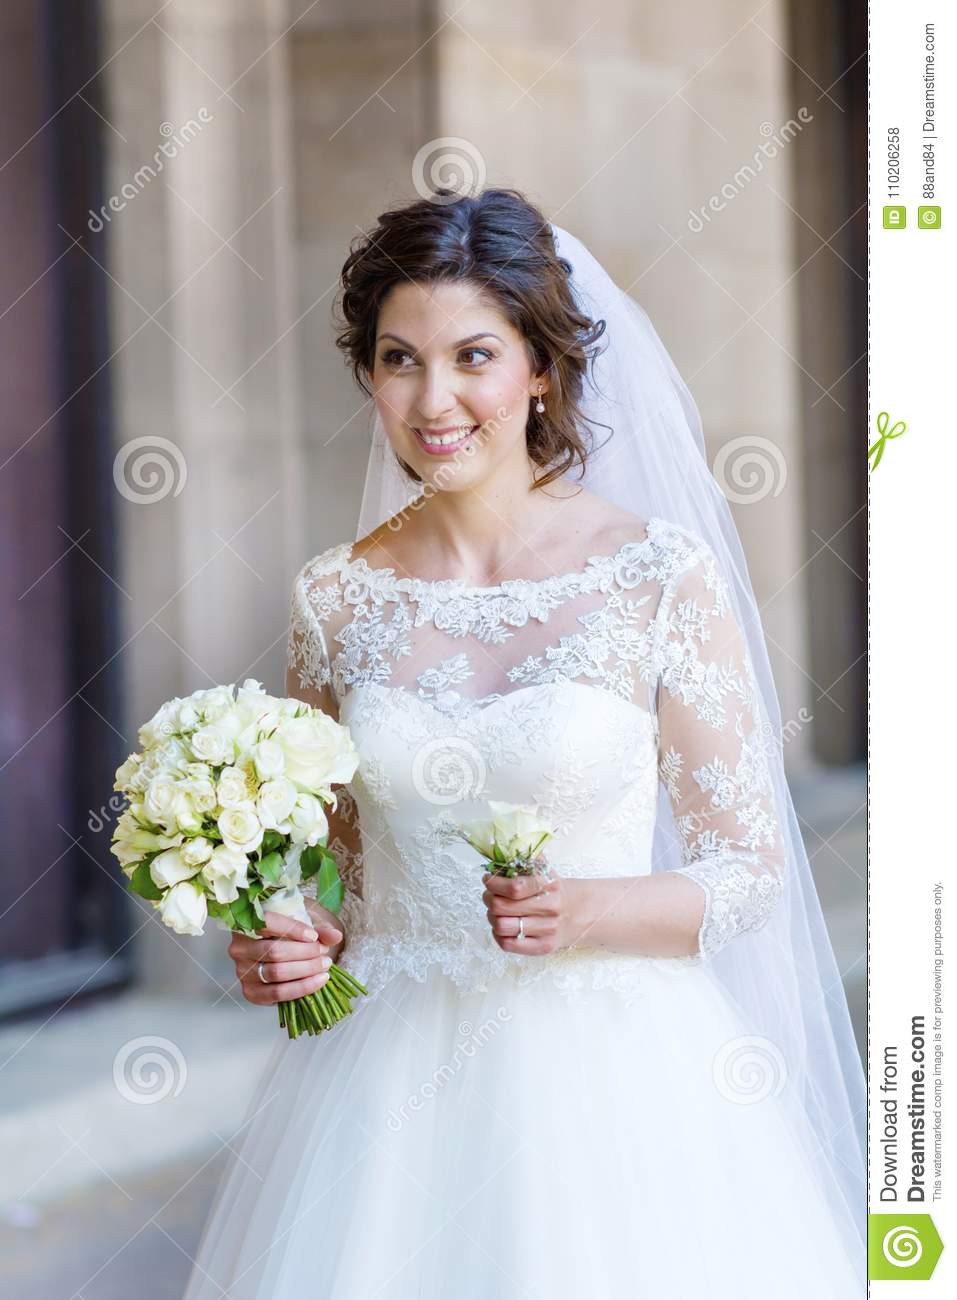 Beautiful Bride With Lace Dress And Bouquet From White Roses